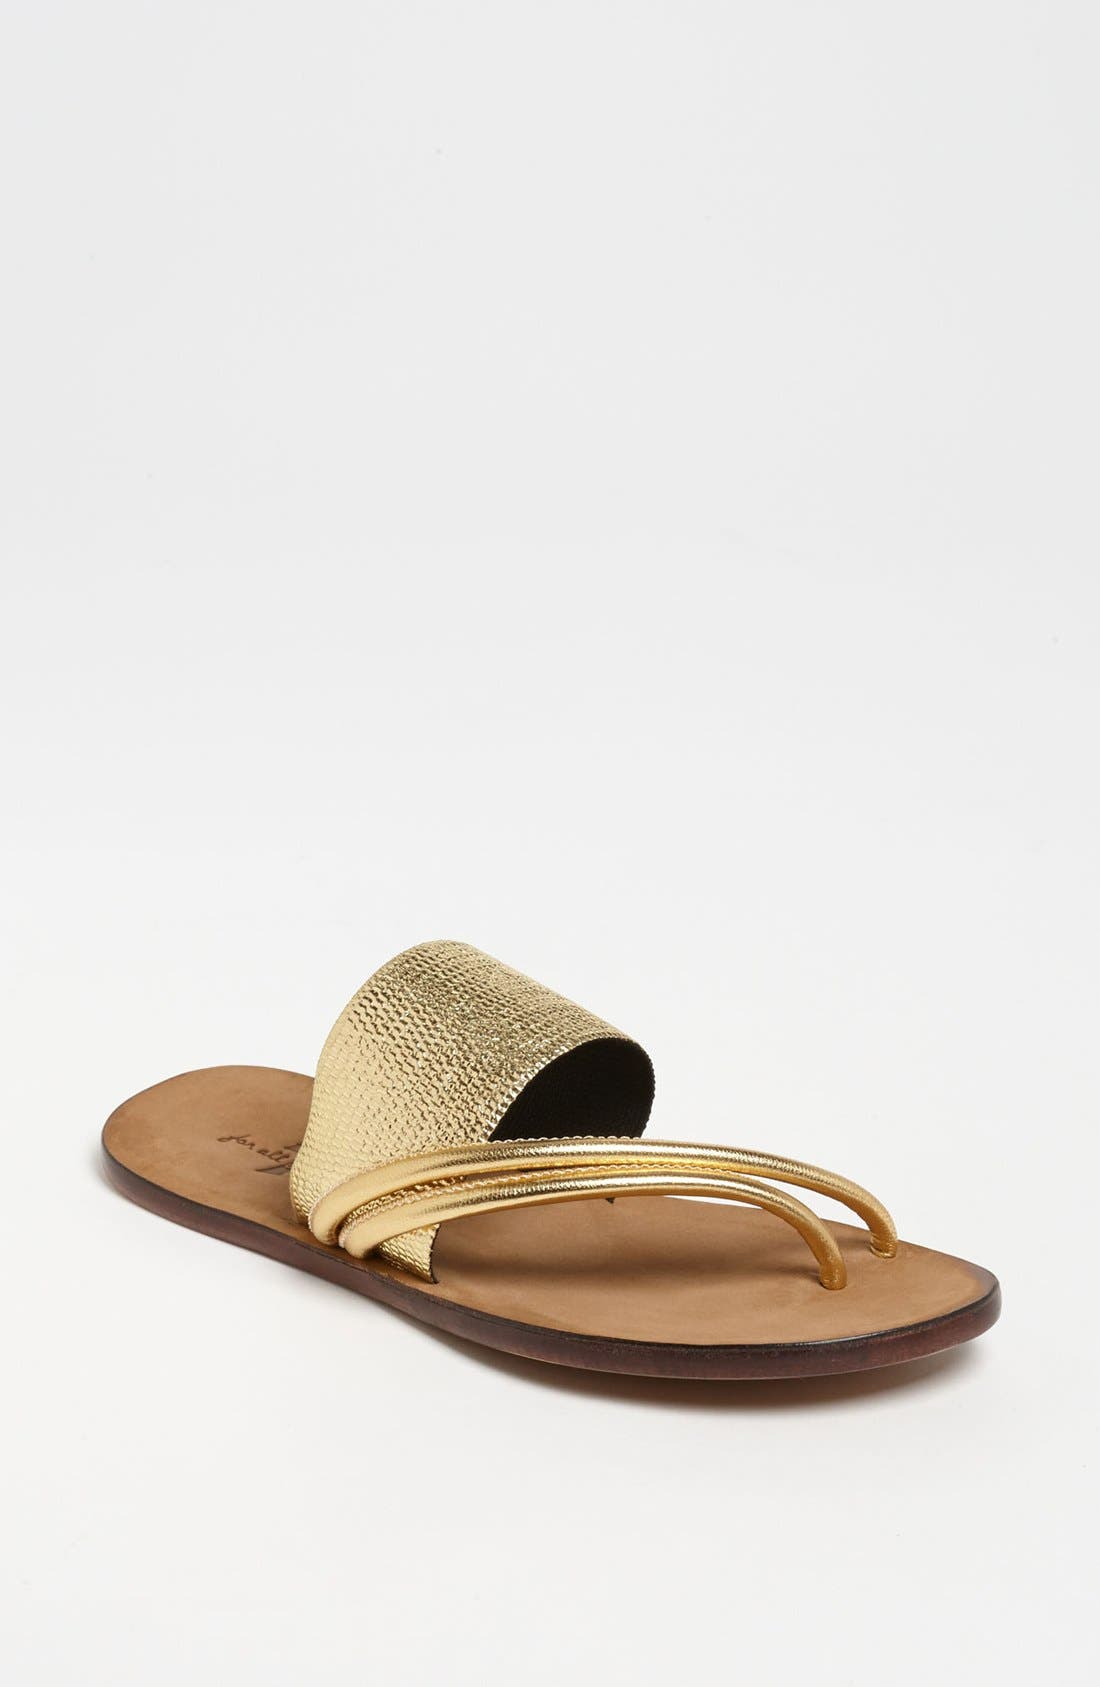 Alternate Image 1 Selected - 7 For All Mankind® 'Zaira' Sandal (Online Only)